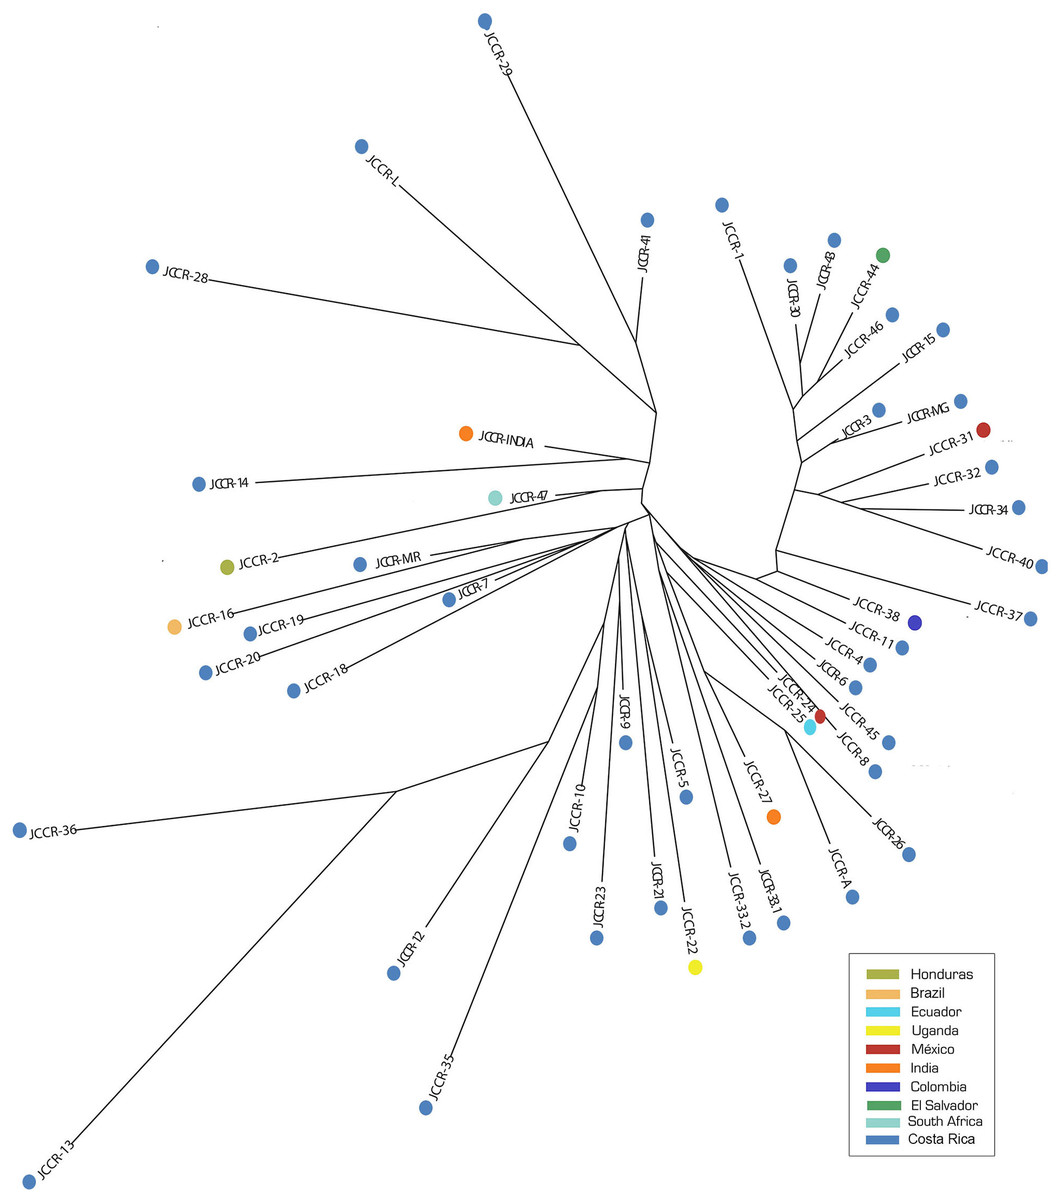 Molecular characterization and genetic diversity of